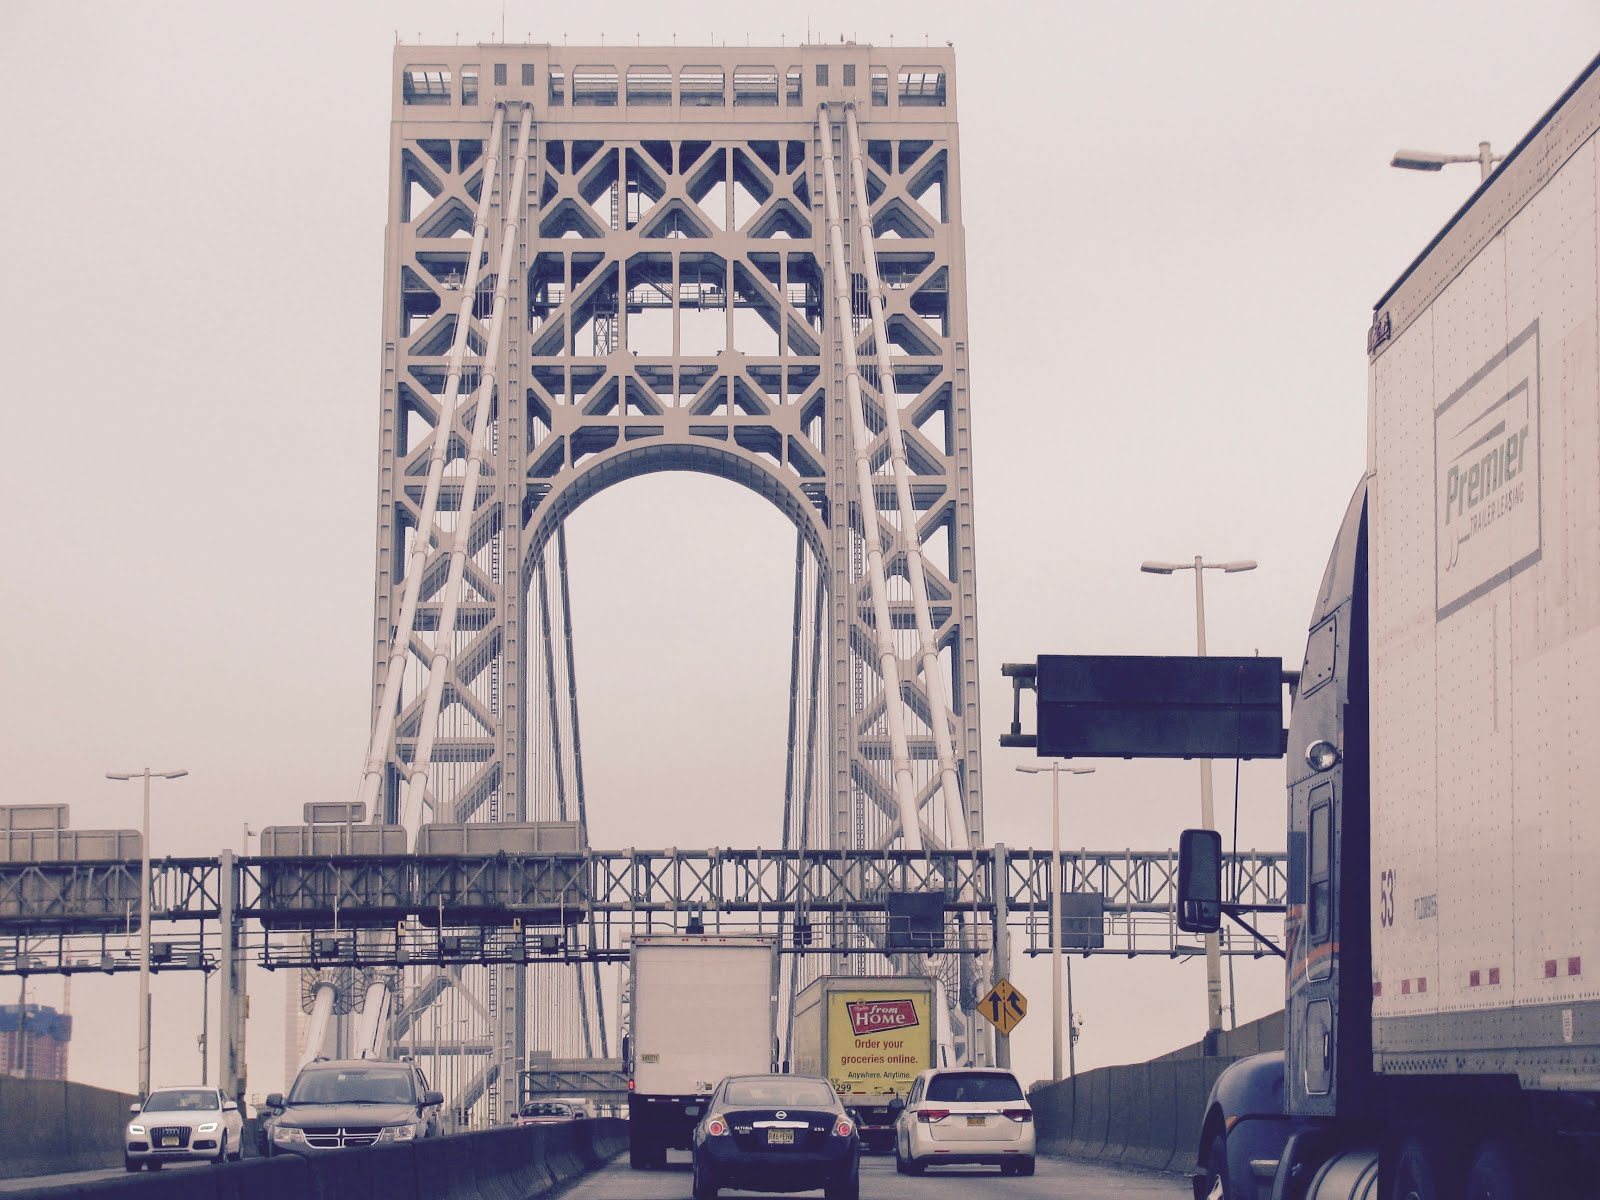 drive by shooting - gwb